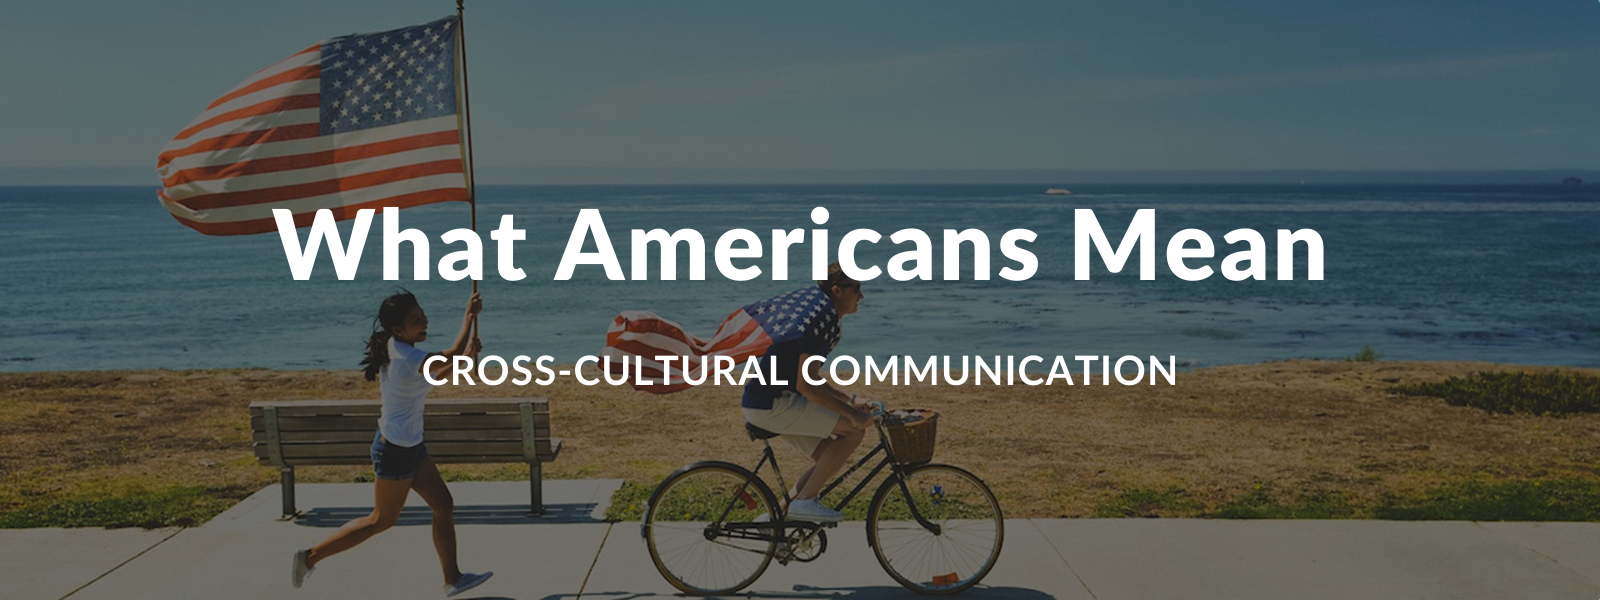 "What Americans Really Mean When They Say ""How Are You?"" - Business English"